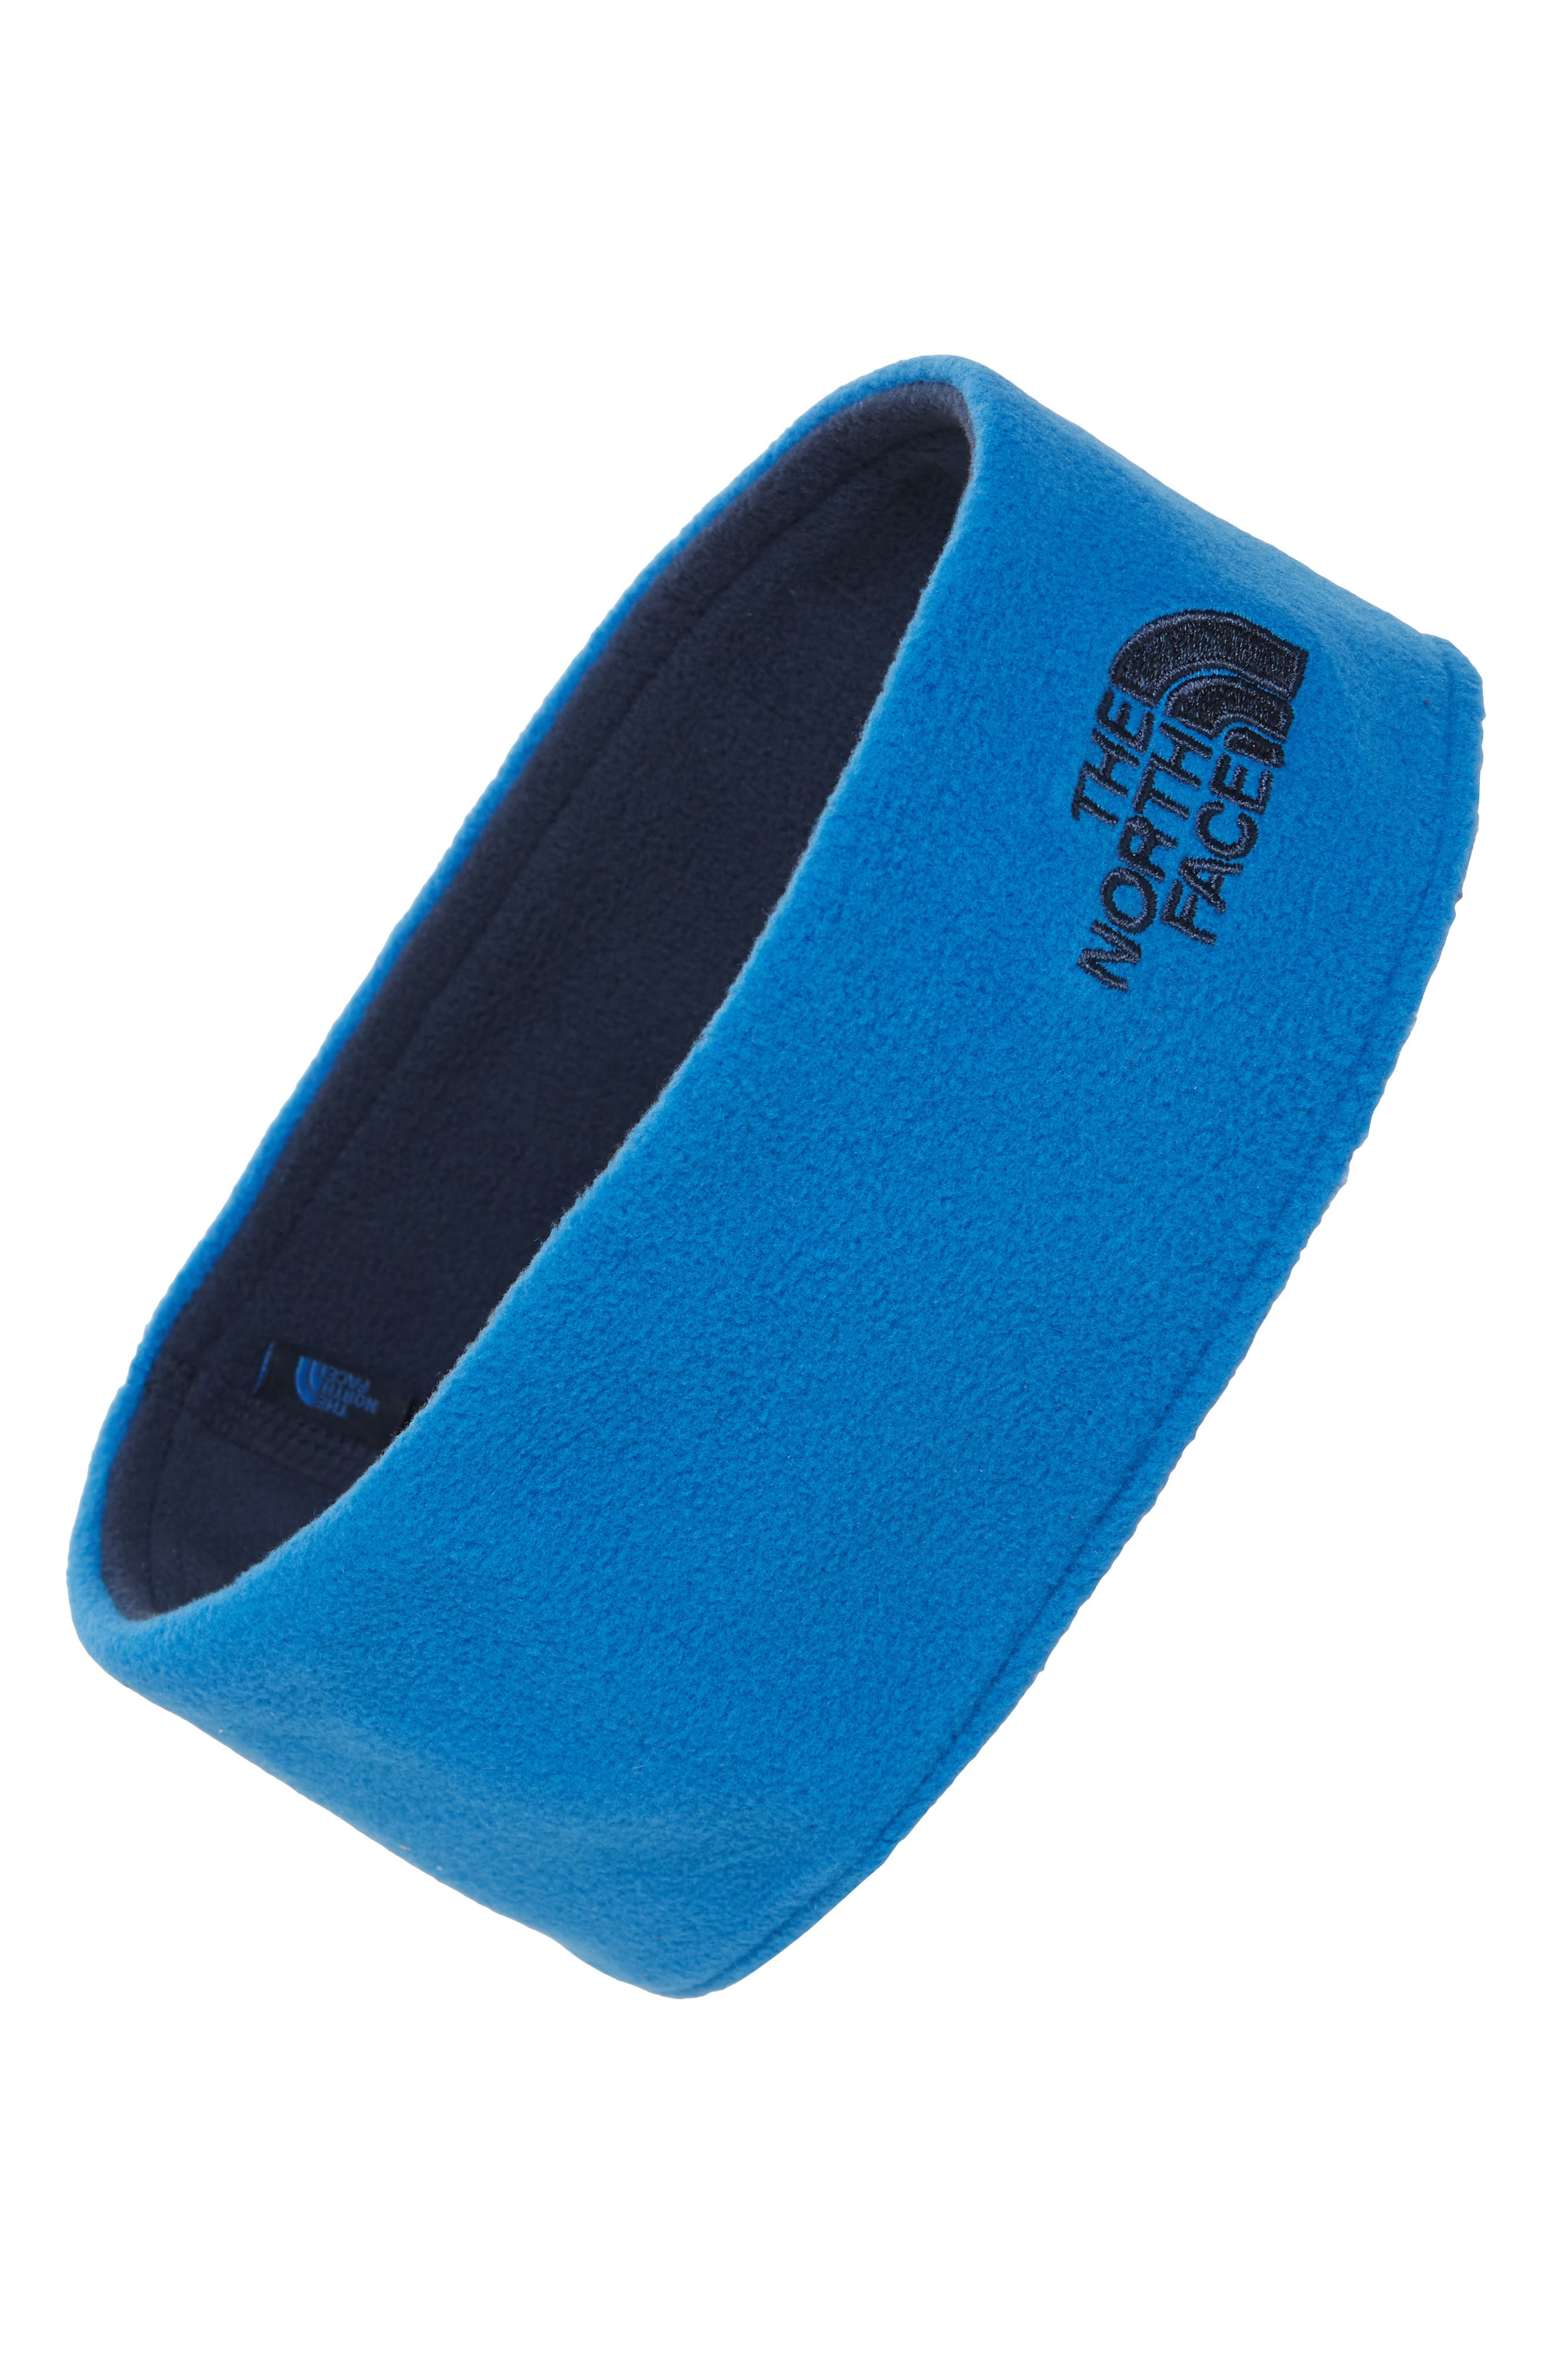 THE NORTH FACE Standard Issue Reversible Earband, Main, color, TURKISH SEA/ COSMIC BLUE